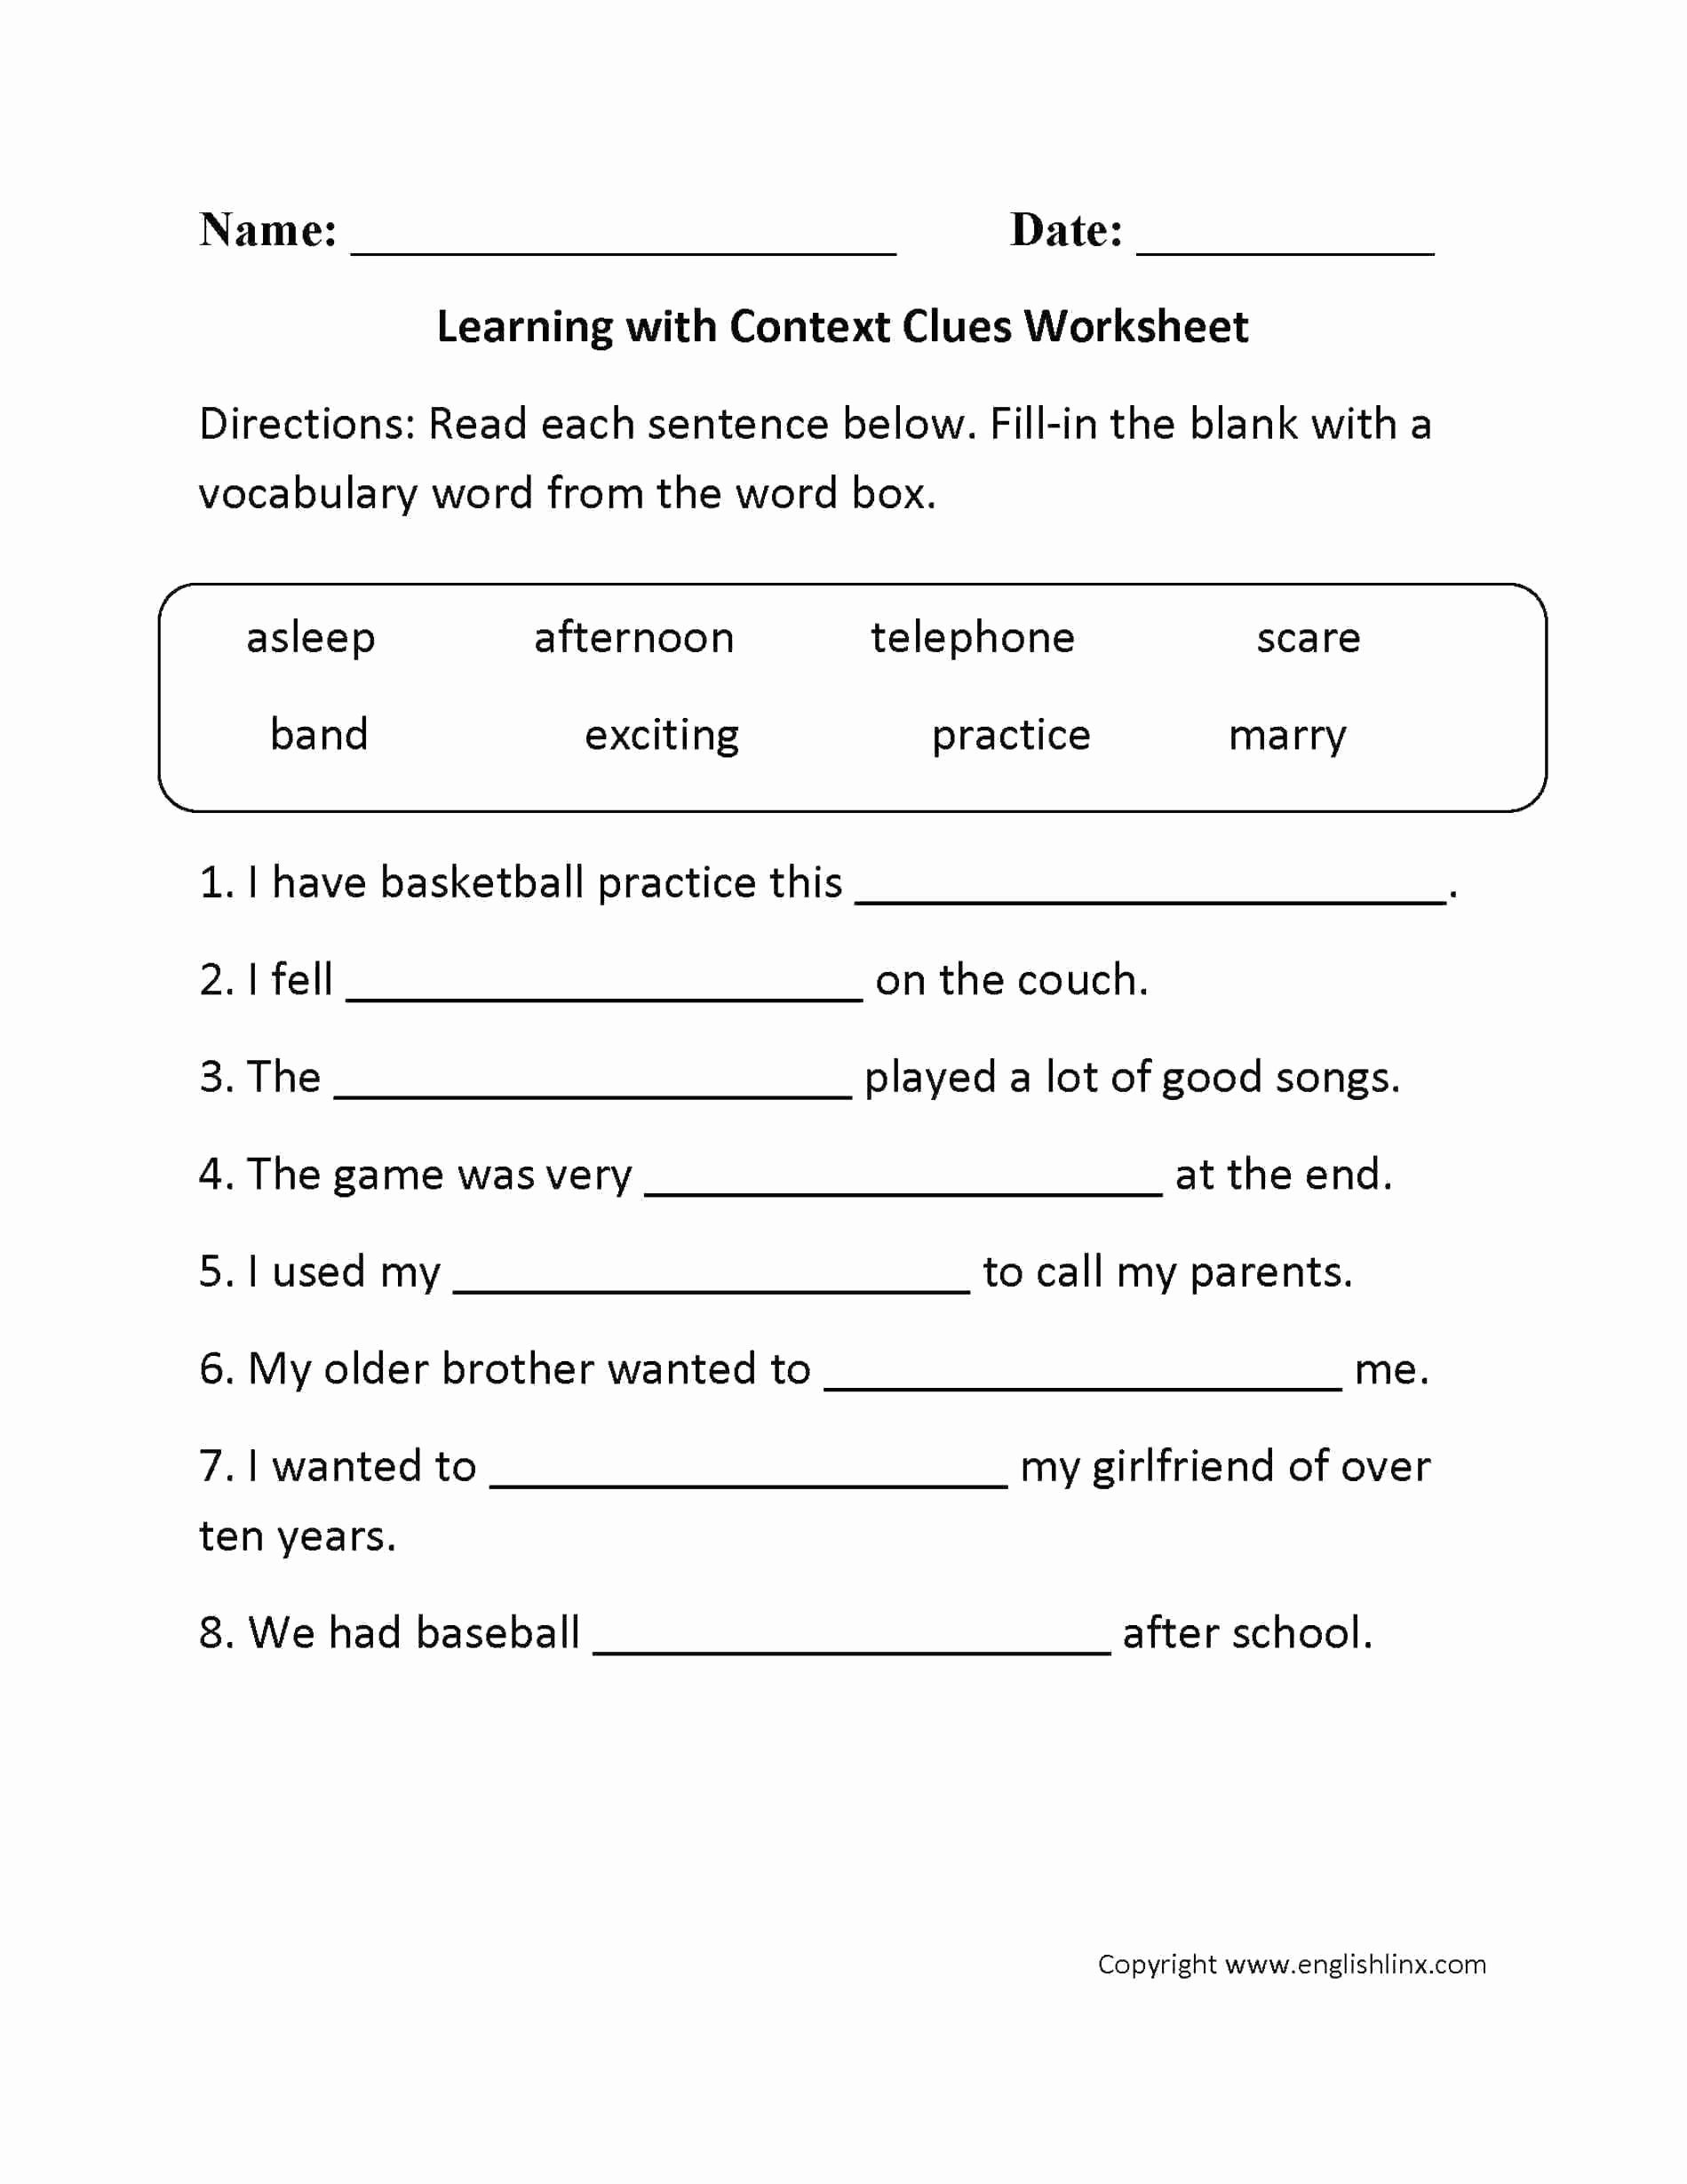 Drawing Conclusions Worksheets 2nd Grade top Drawing Conclusions Worksheet 2nd Grade